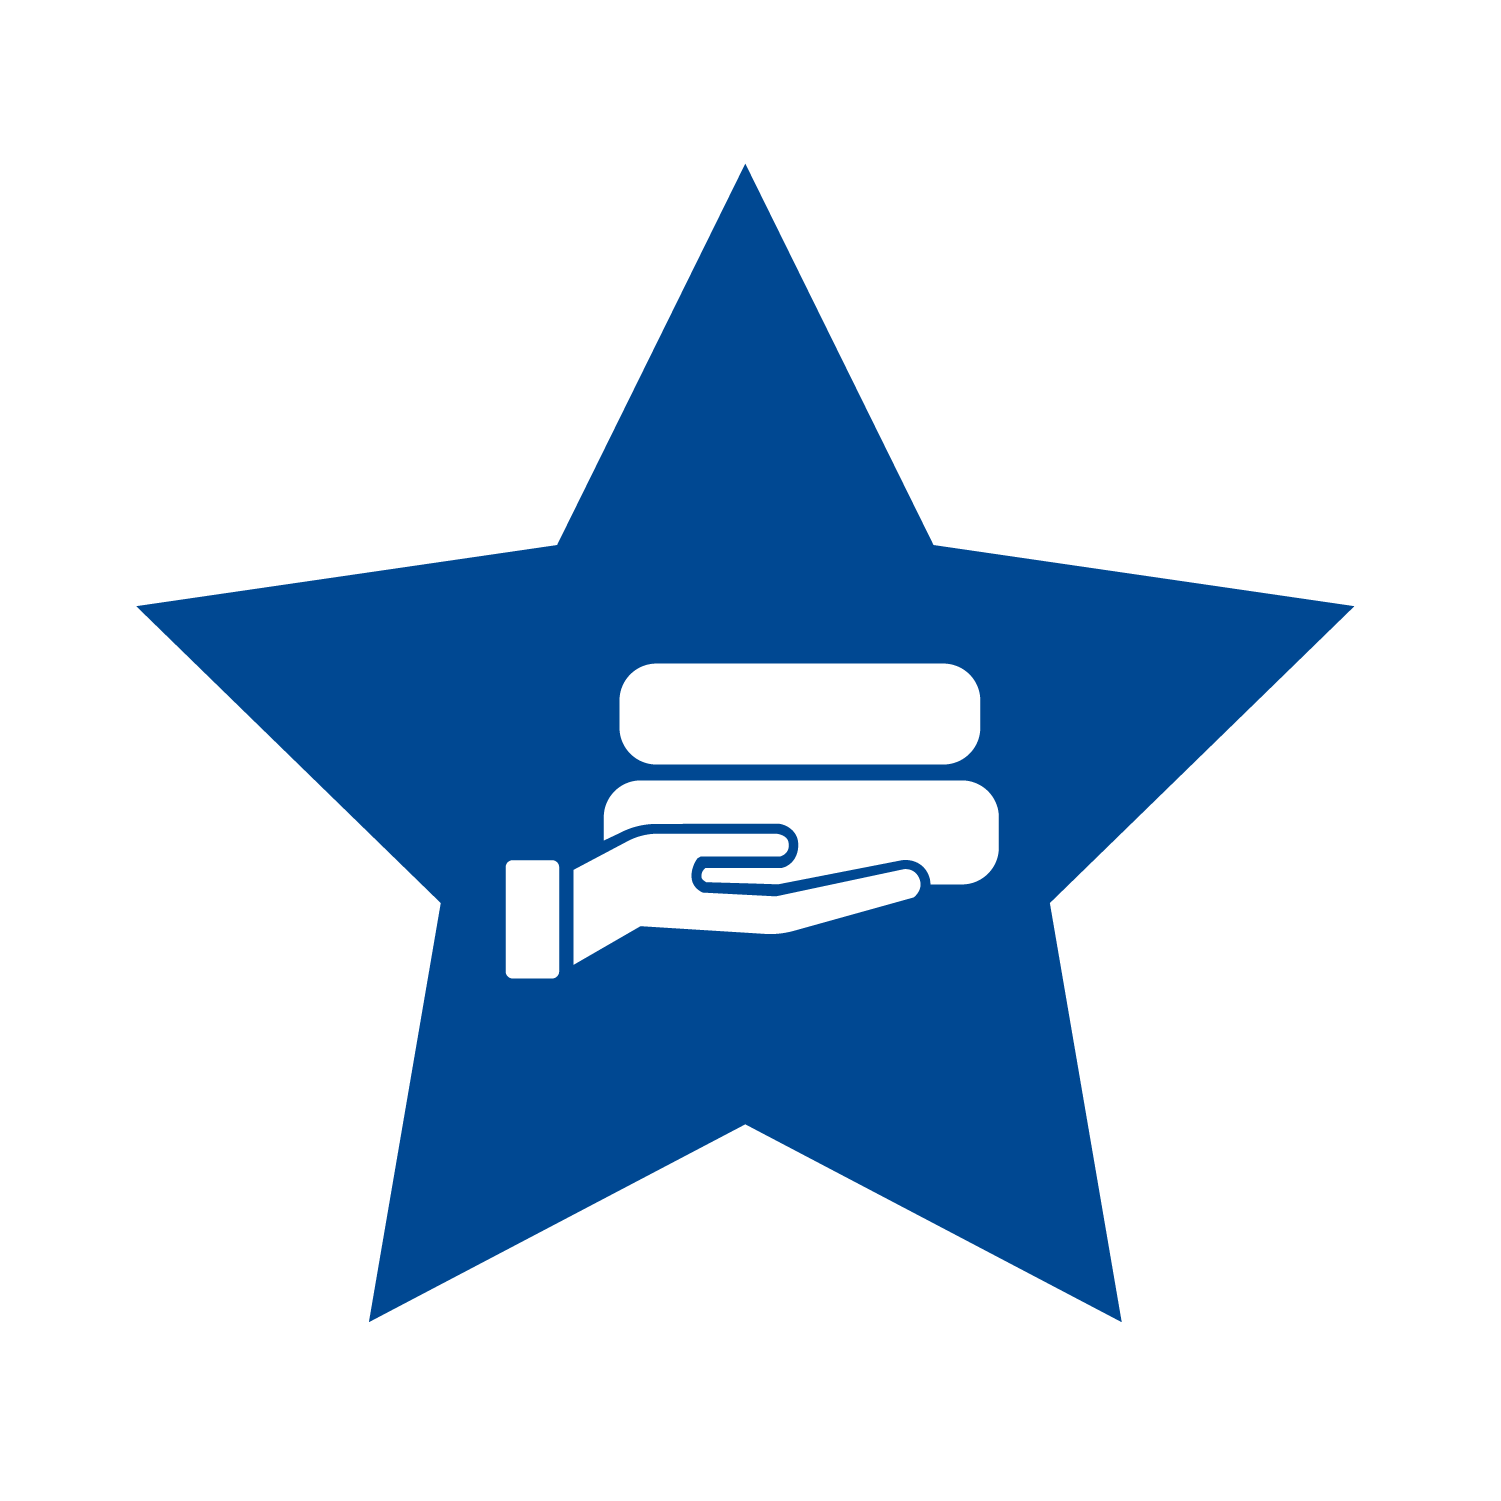 ACL_HOSP_Stars-Blue-Housekeeping.png